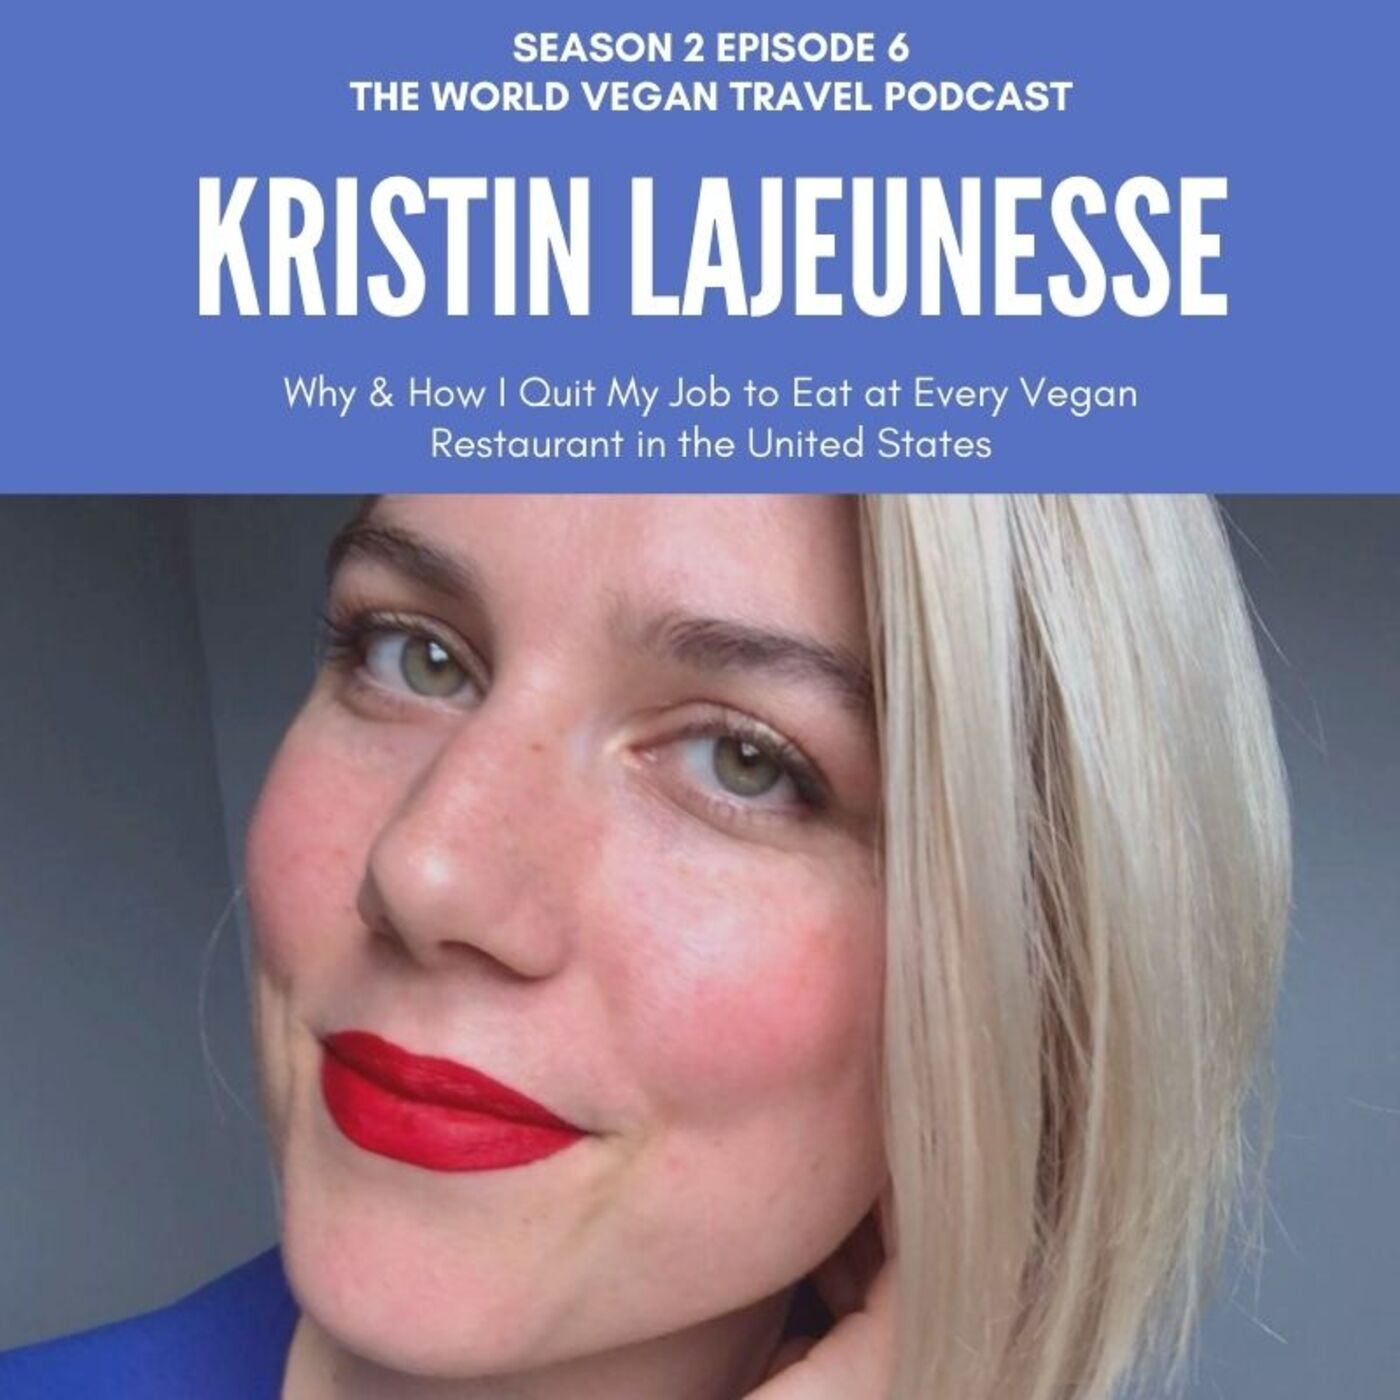 S2 Ep 6 | Why & How I Quit My Job to Eat at Every Vegan Restaurant in the United States | Kristin Lajeunesse